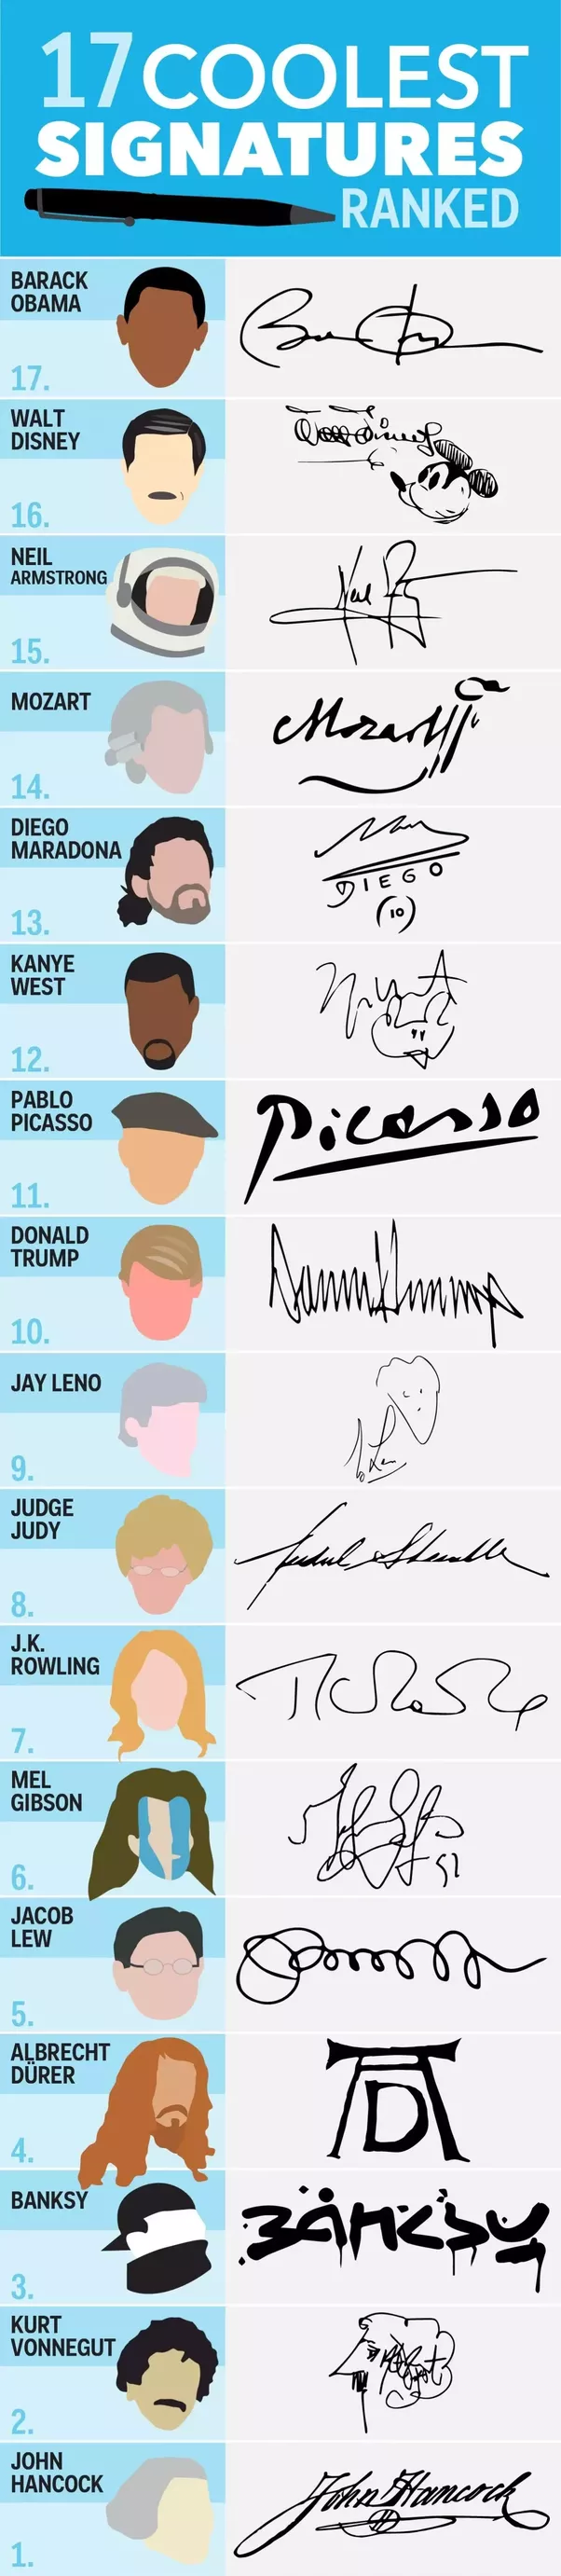 Why do famous people have such nice signatures? - Quora